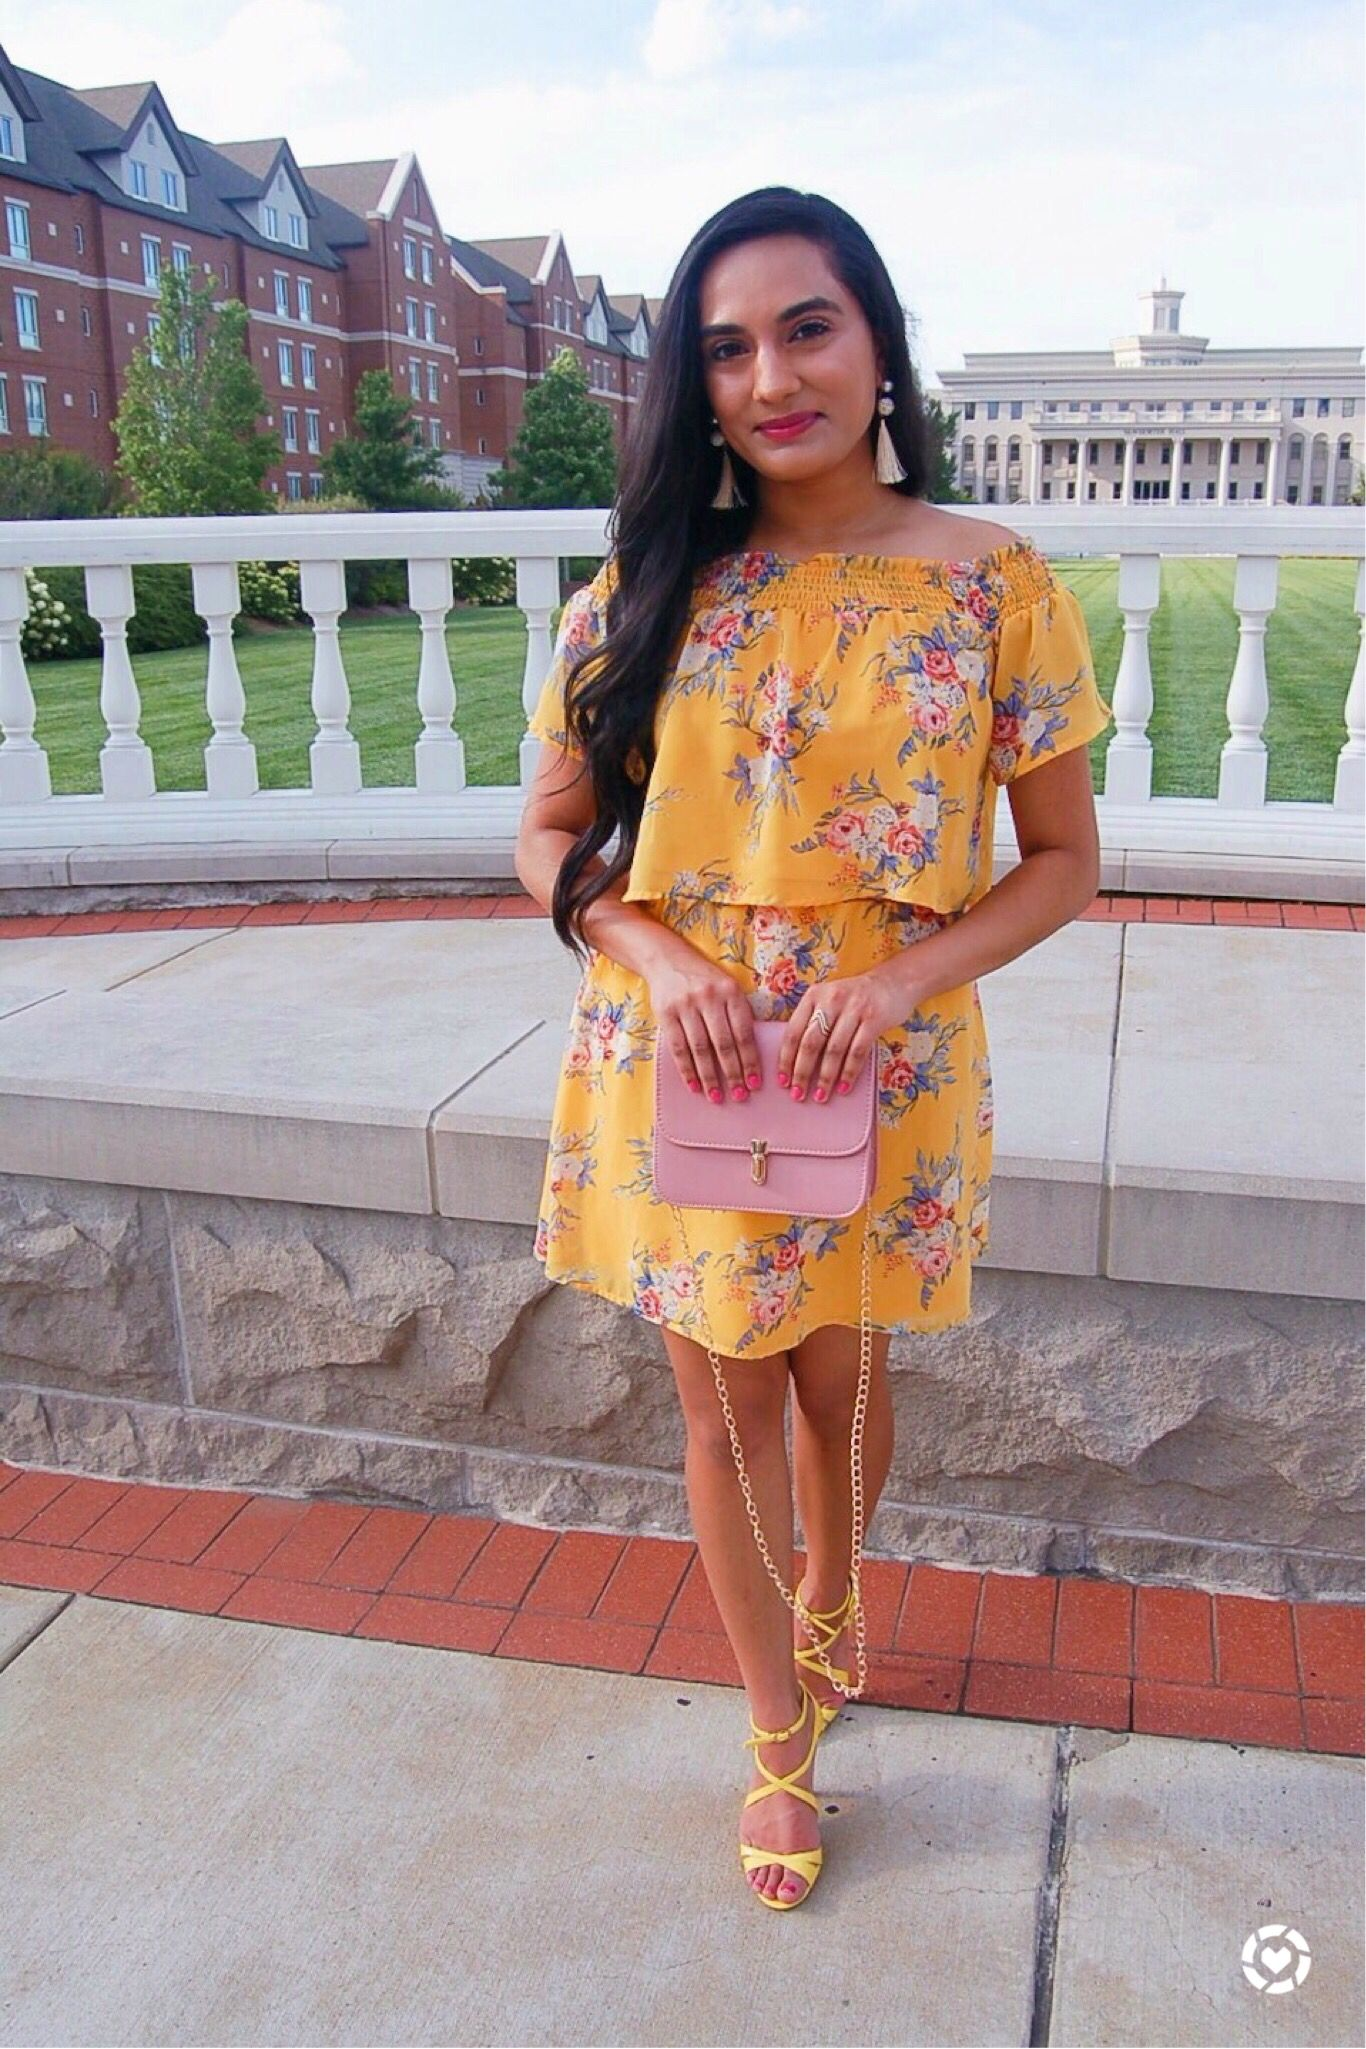 cf9481583c Yellow Floral Two Piece Set • Yellow Floral Top and Skirt • Matching Top  and Skirt